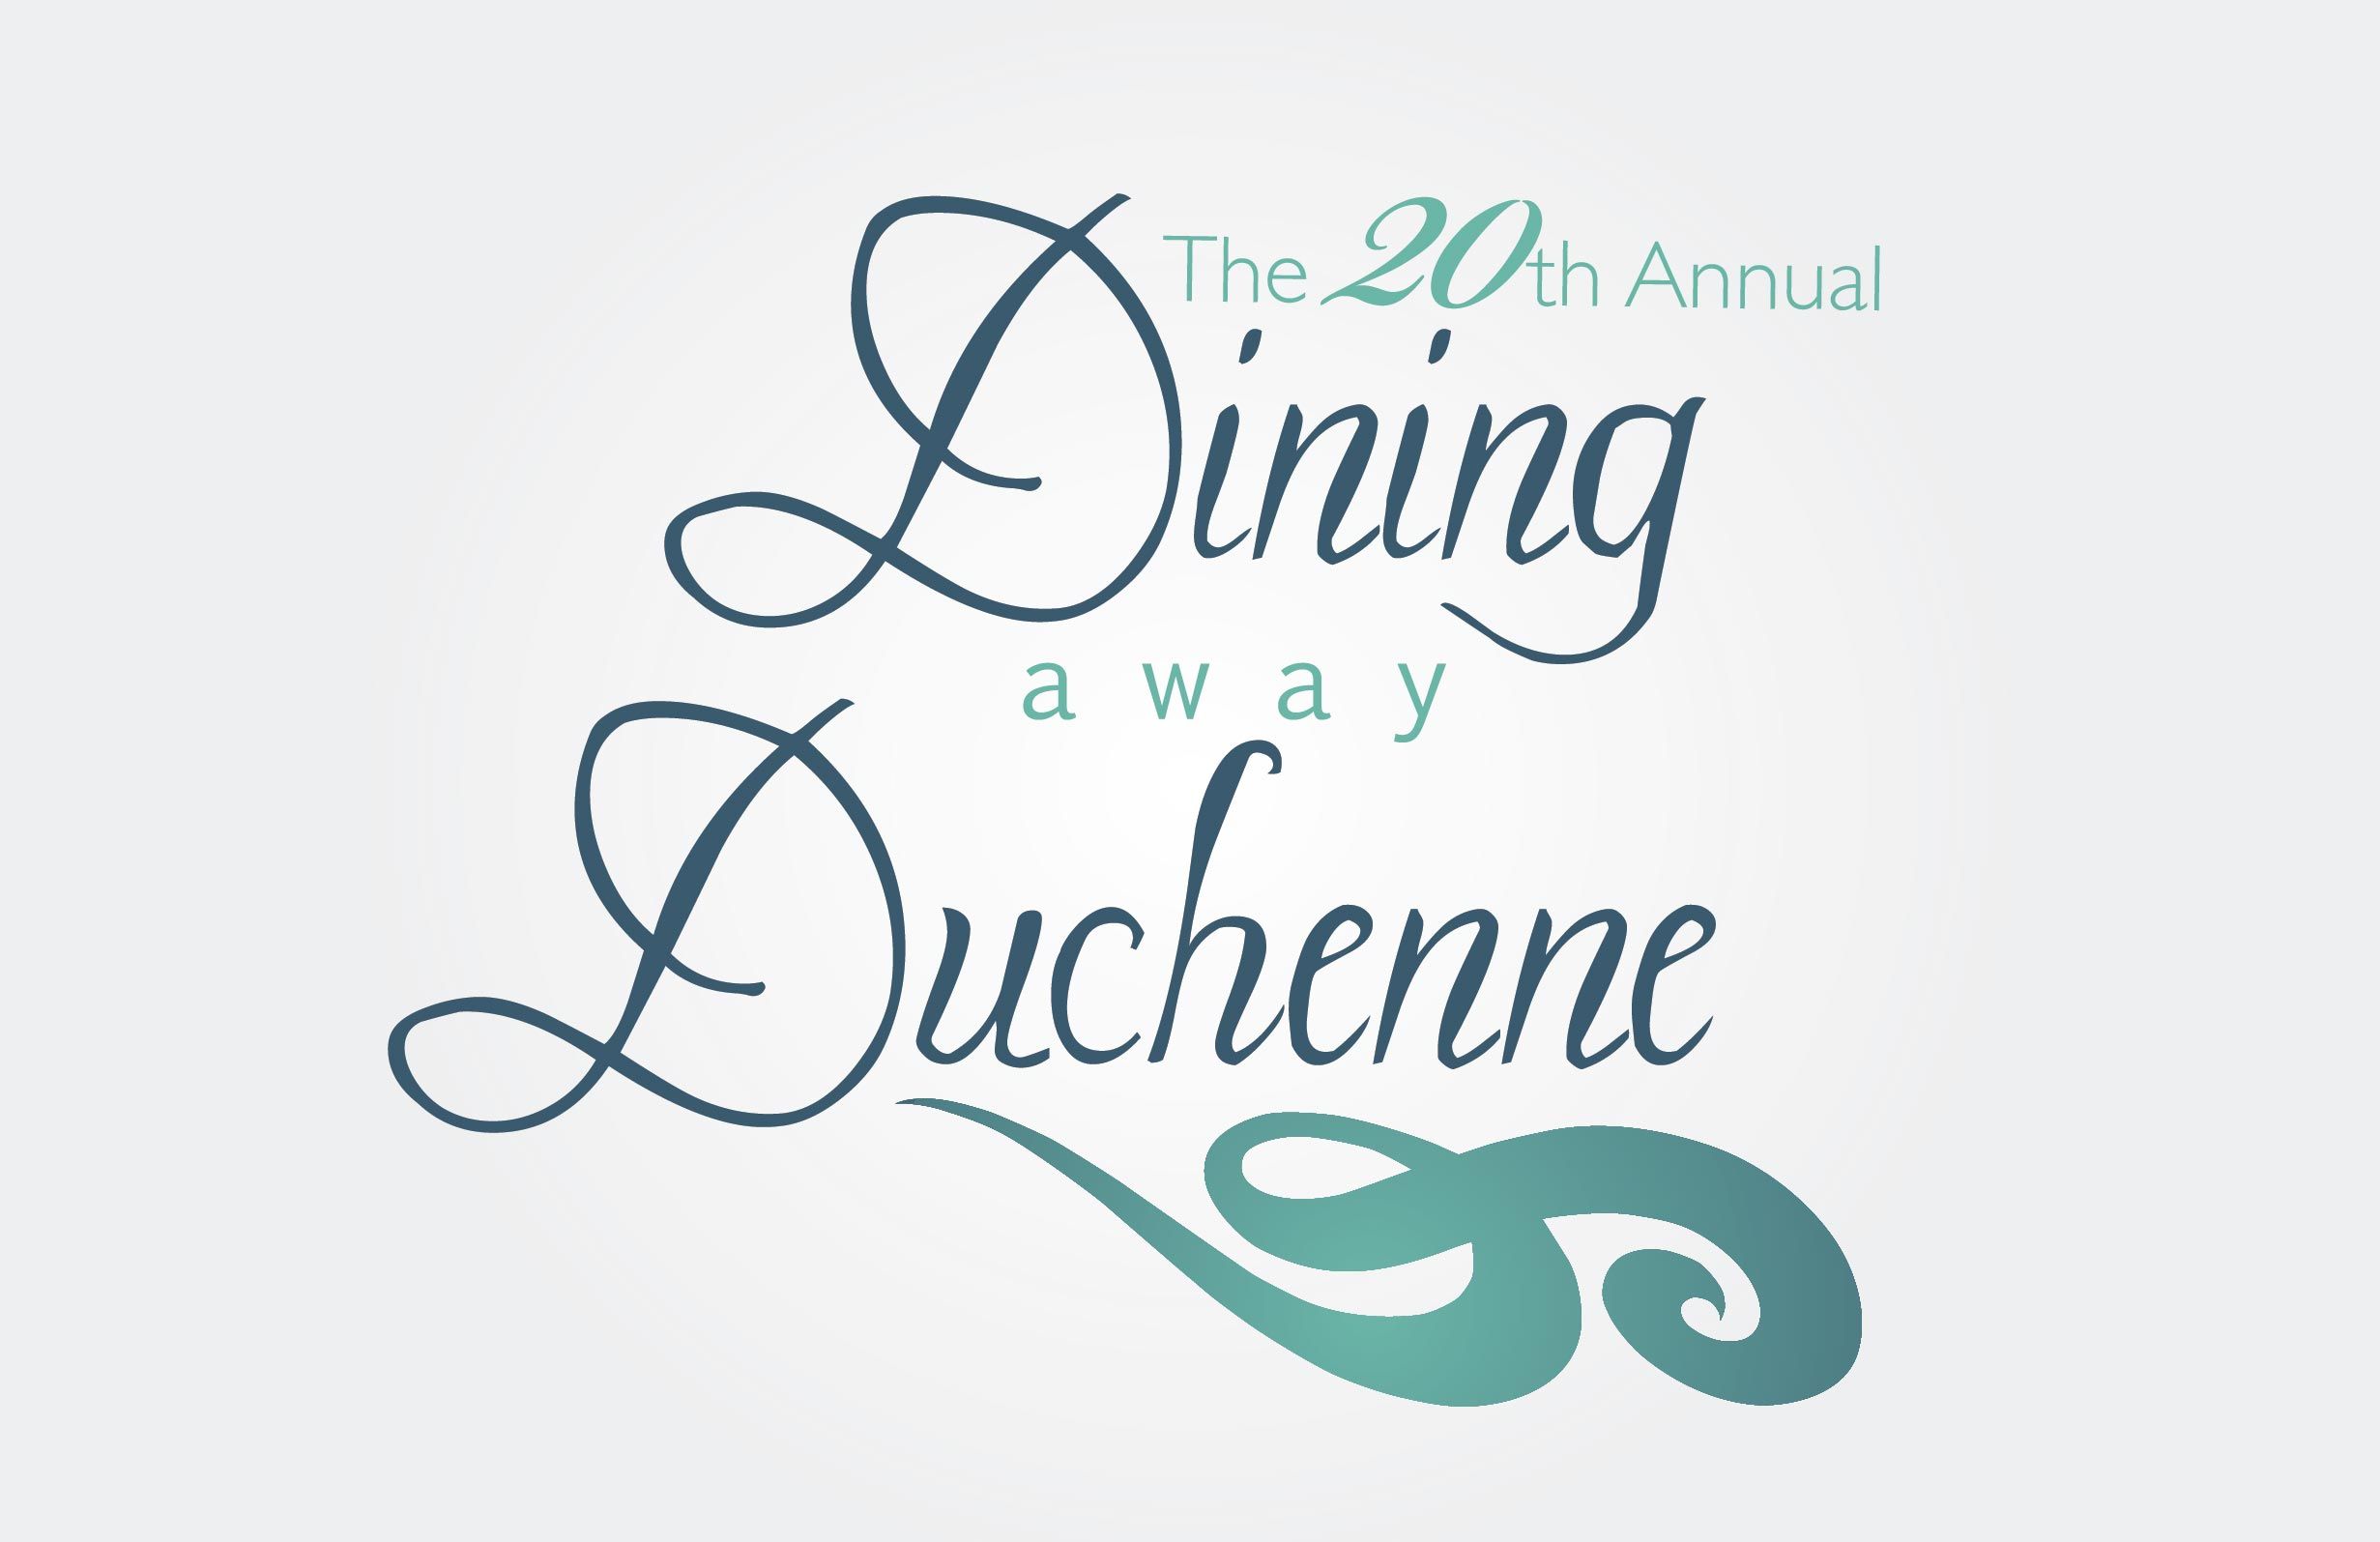 20th Annual Dining Away Duchenne